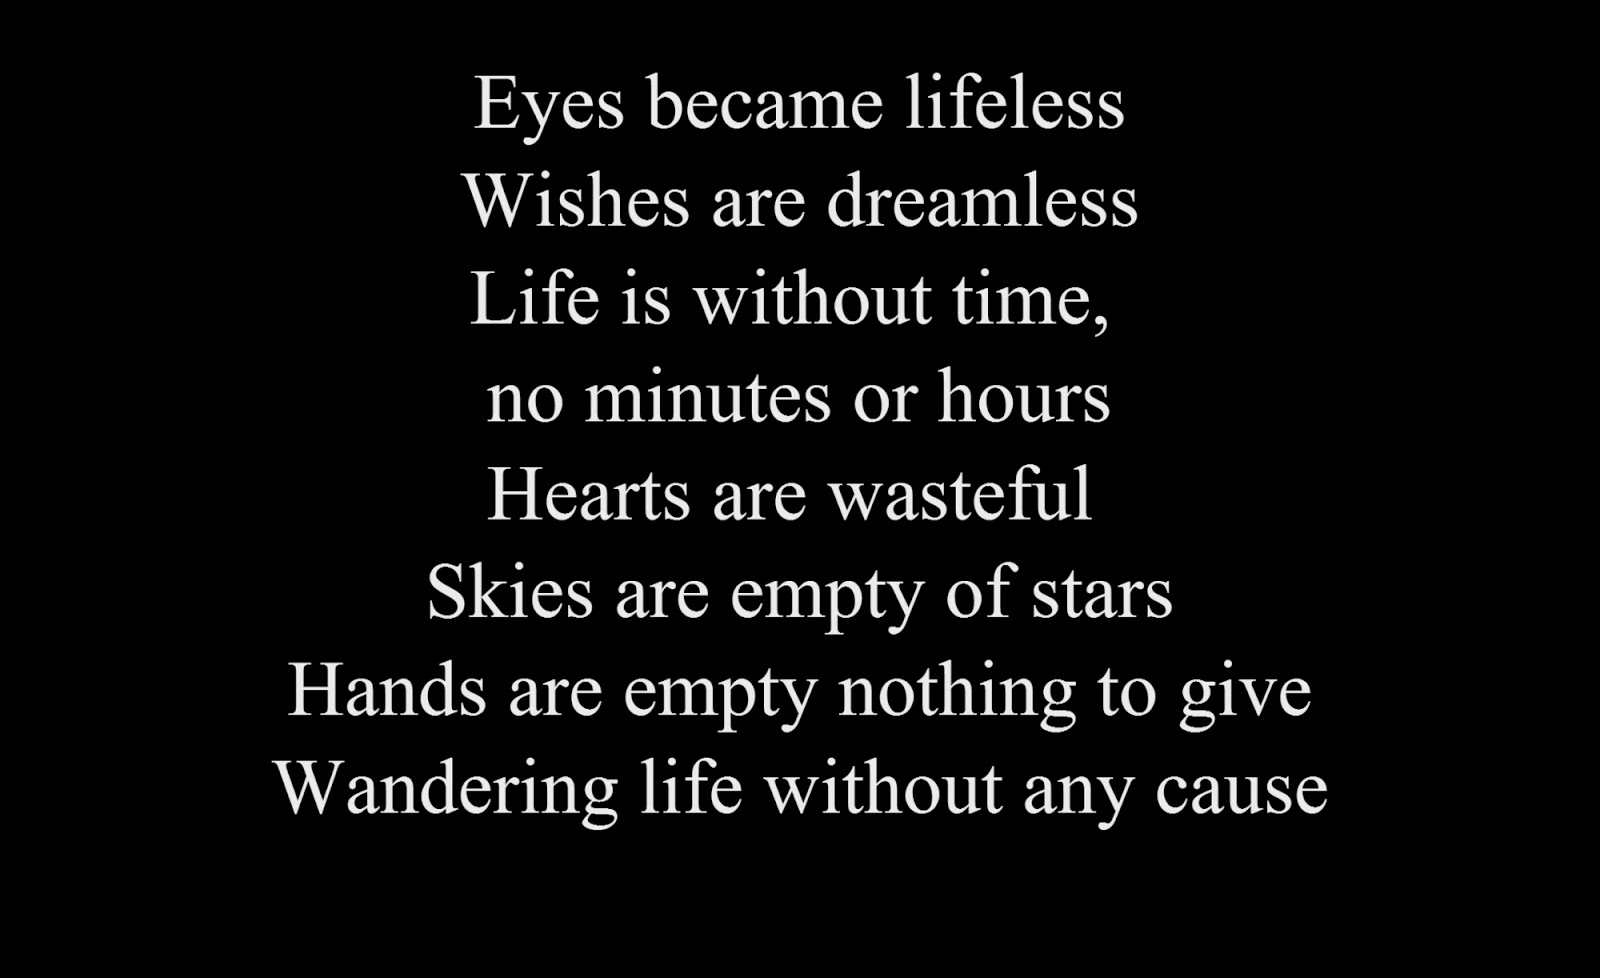 Eyes became lifeless Wishes are dreamless Life is without time, no minutes or hours Hearts are  wasteful Skies are empty of stars Hands are empty nothing to give Wandering life without any cause